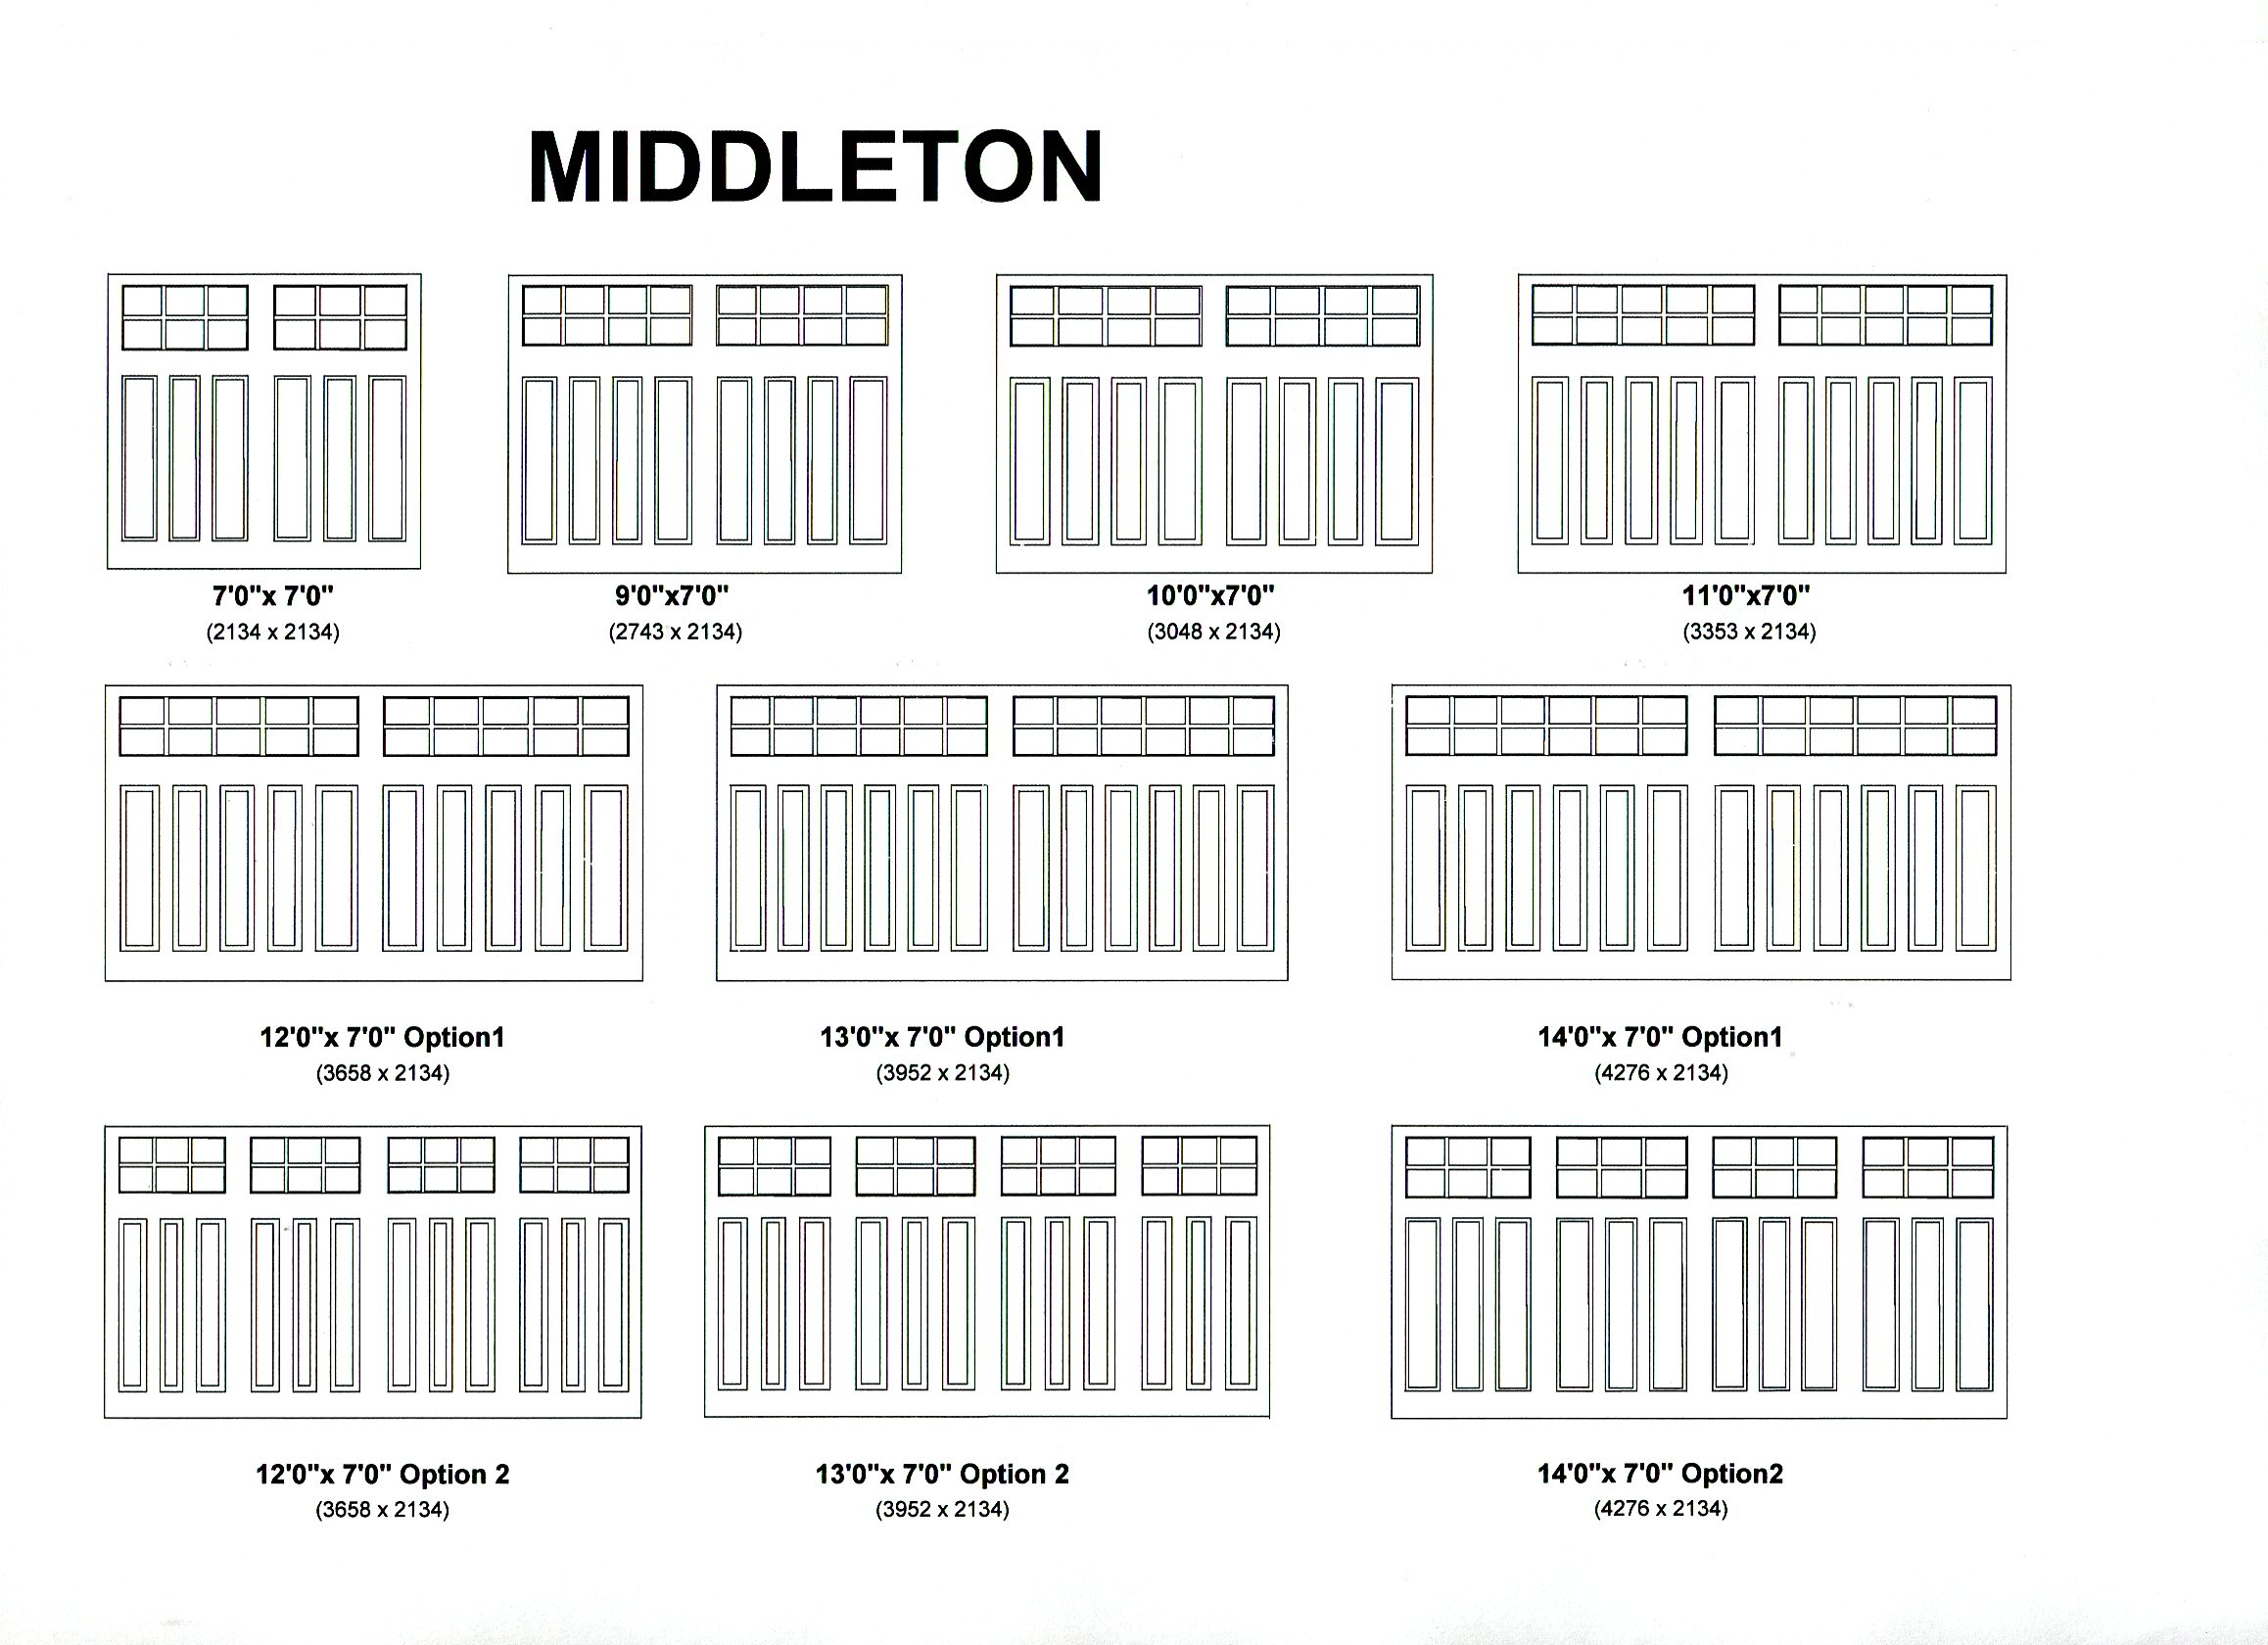 Cedar Door Middleton design options